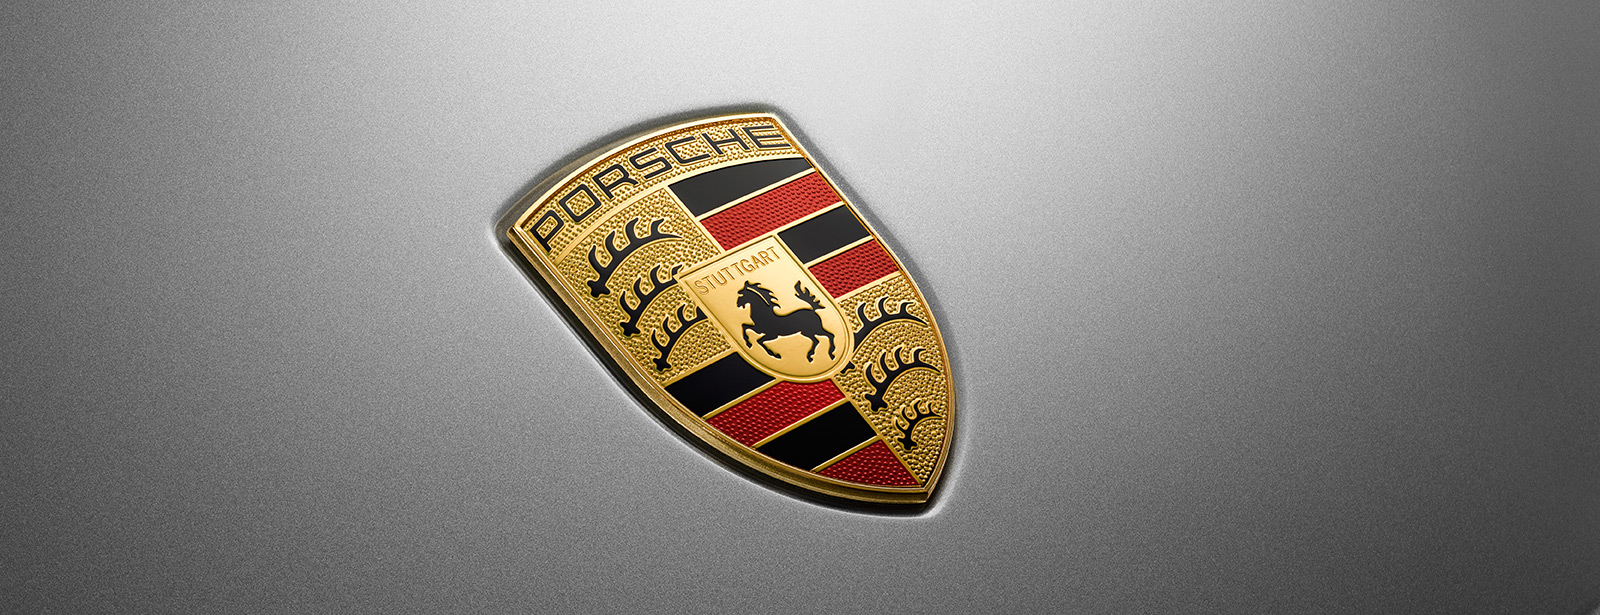 Porsche Newsroom - Information. Intensified.